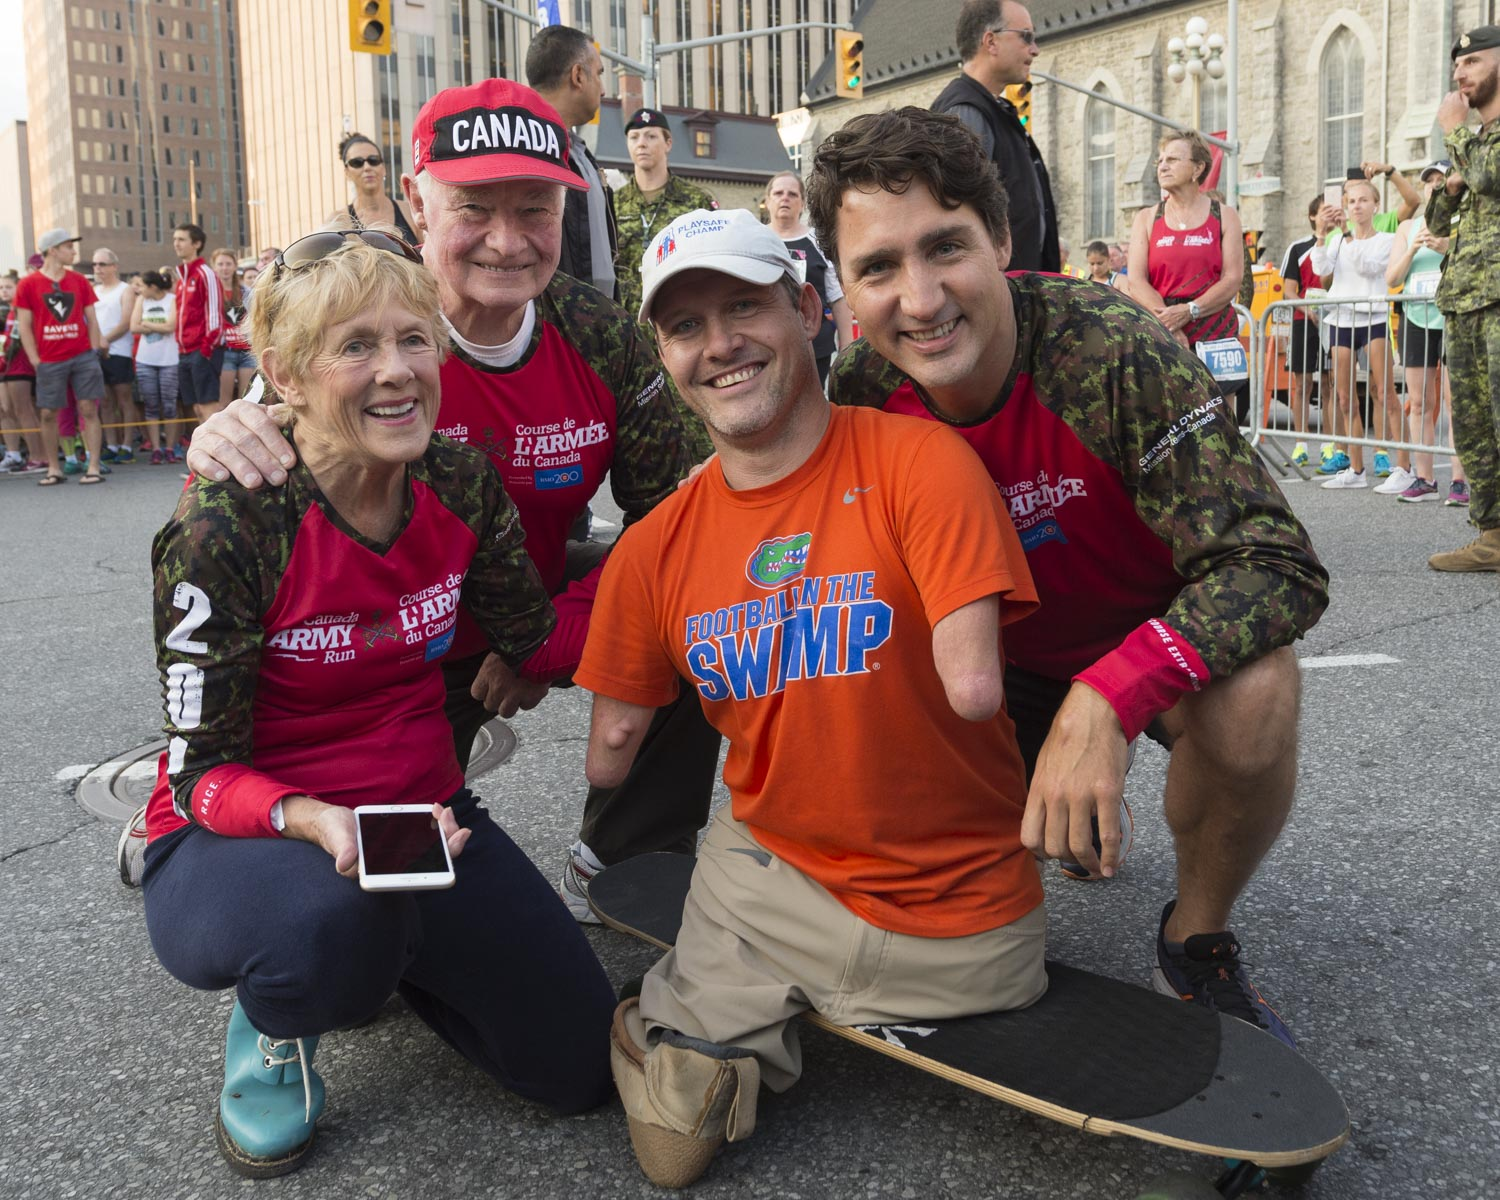 As patrons of Canada Army Run, Their Excellencies met with participants in the Ill/Injured/Disabled category of Canada Army Run, in downtown Ottawa, on September 17, 2017.